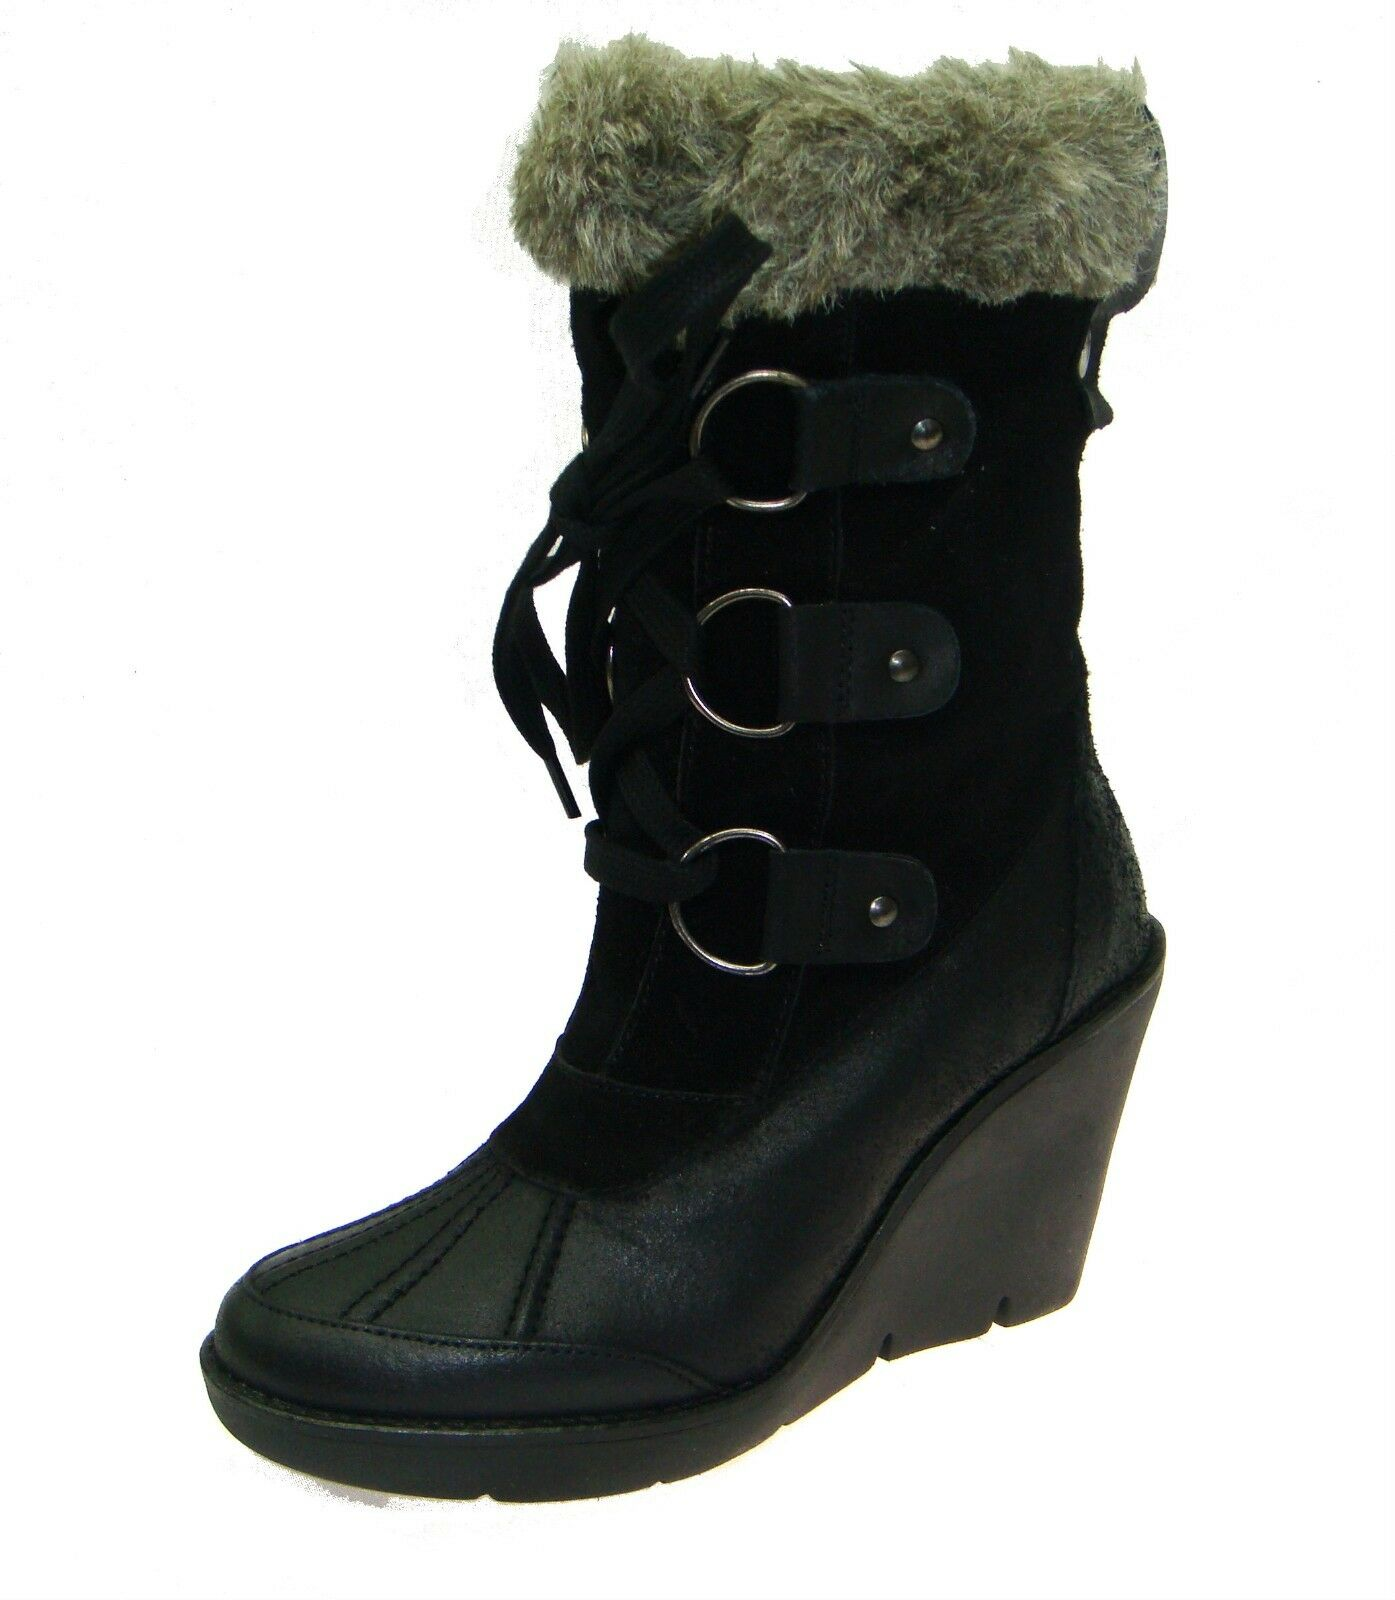 Womens Office Norm-Ski Outdoor Boot With Fur Black  Leather Boots Reg-Price 180